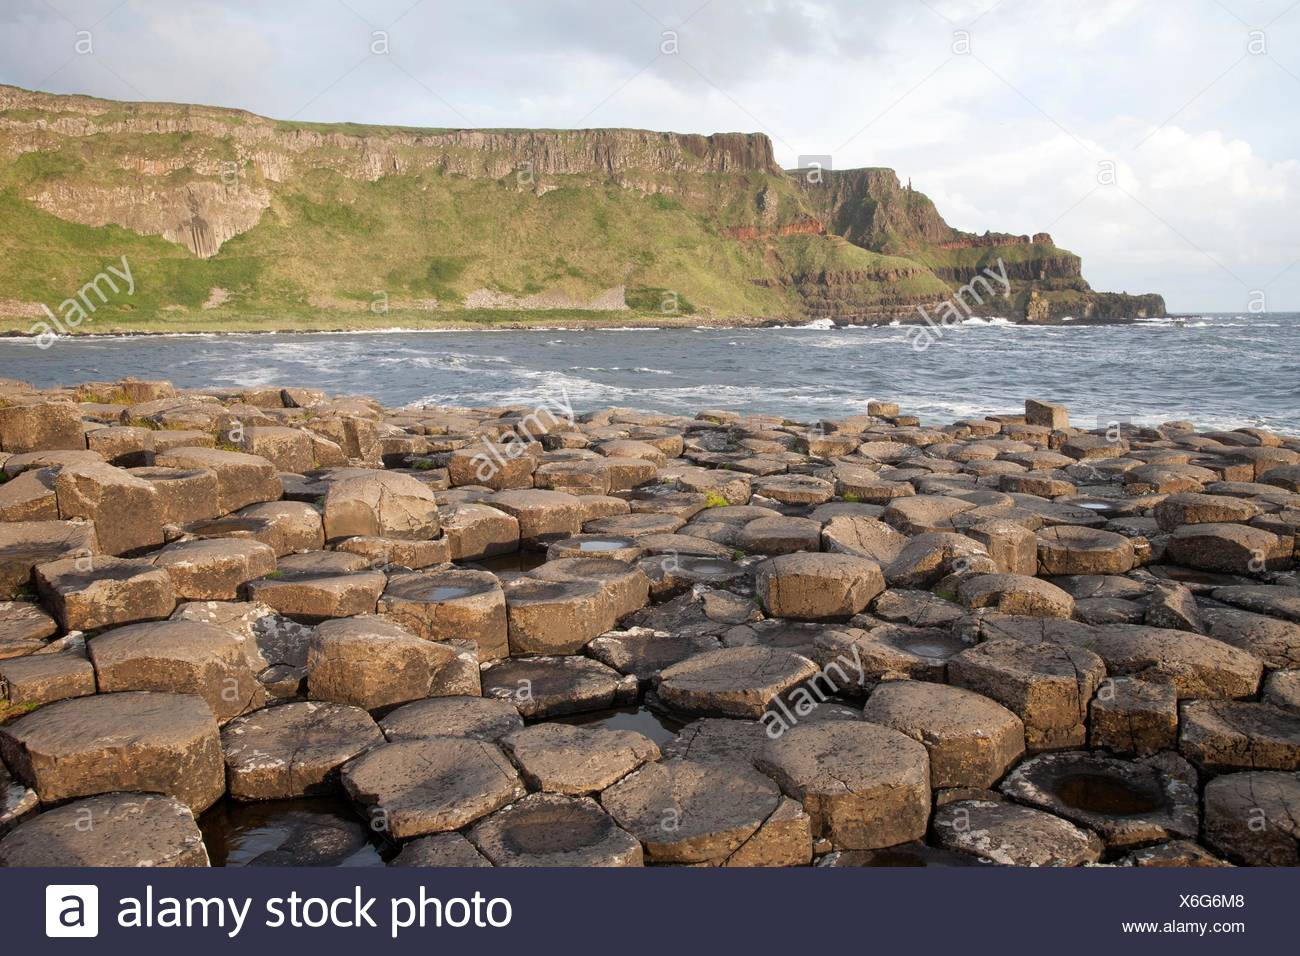 Giants Causeway, County Antrim, Northern Ireland. Stock Photo